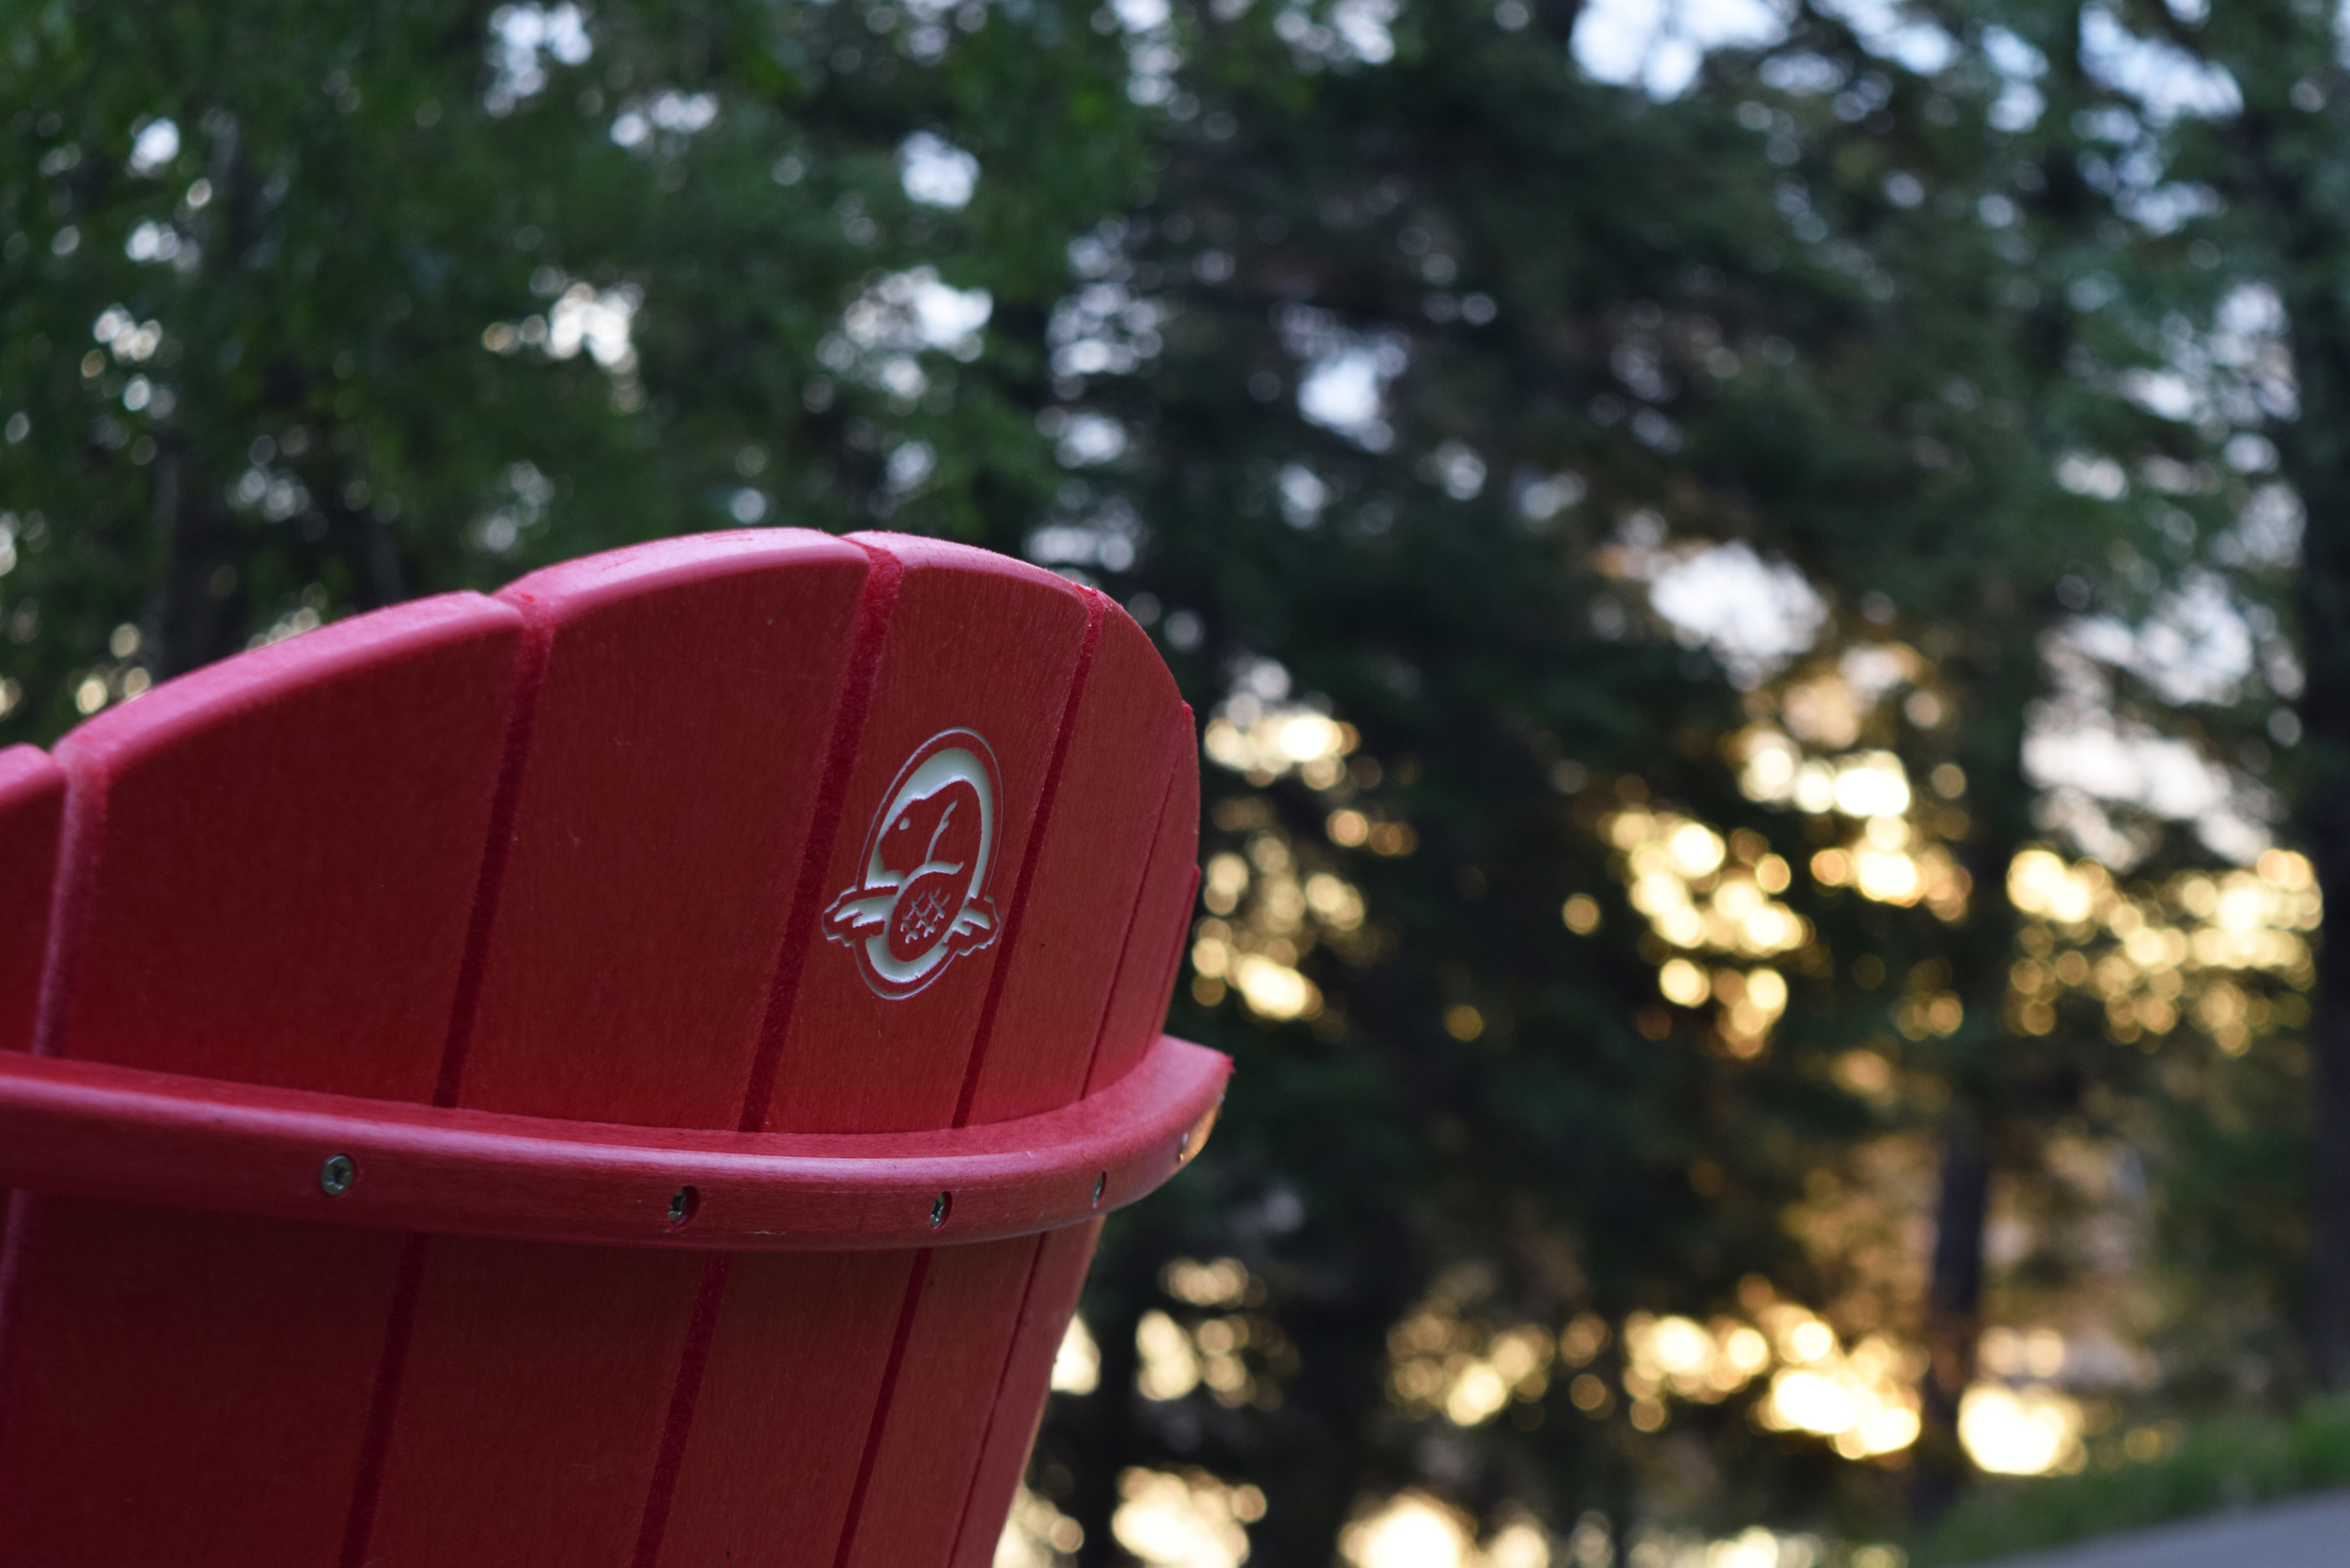 Parks Canada branded red chairs